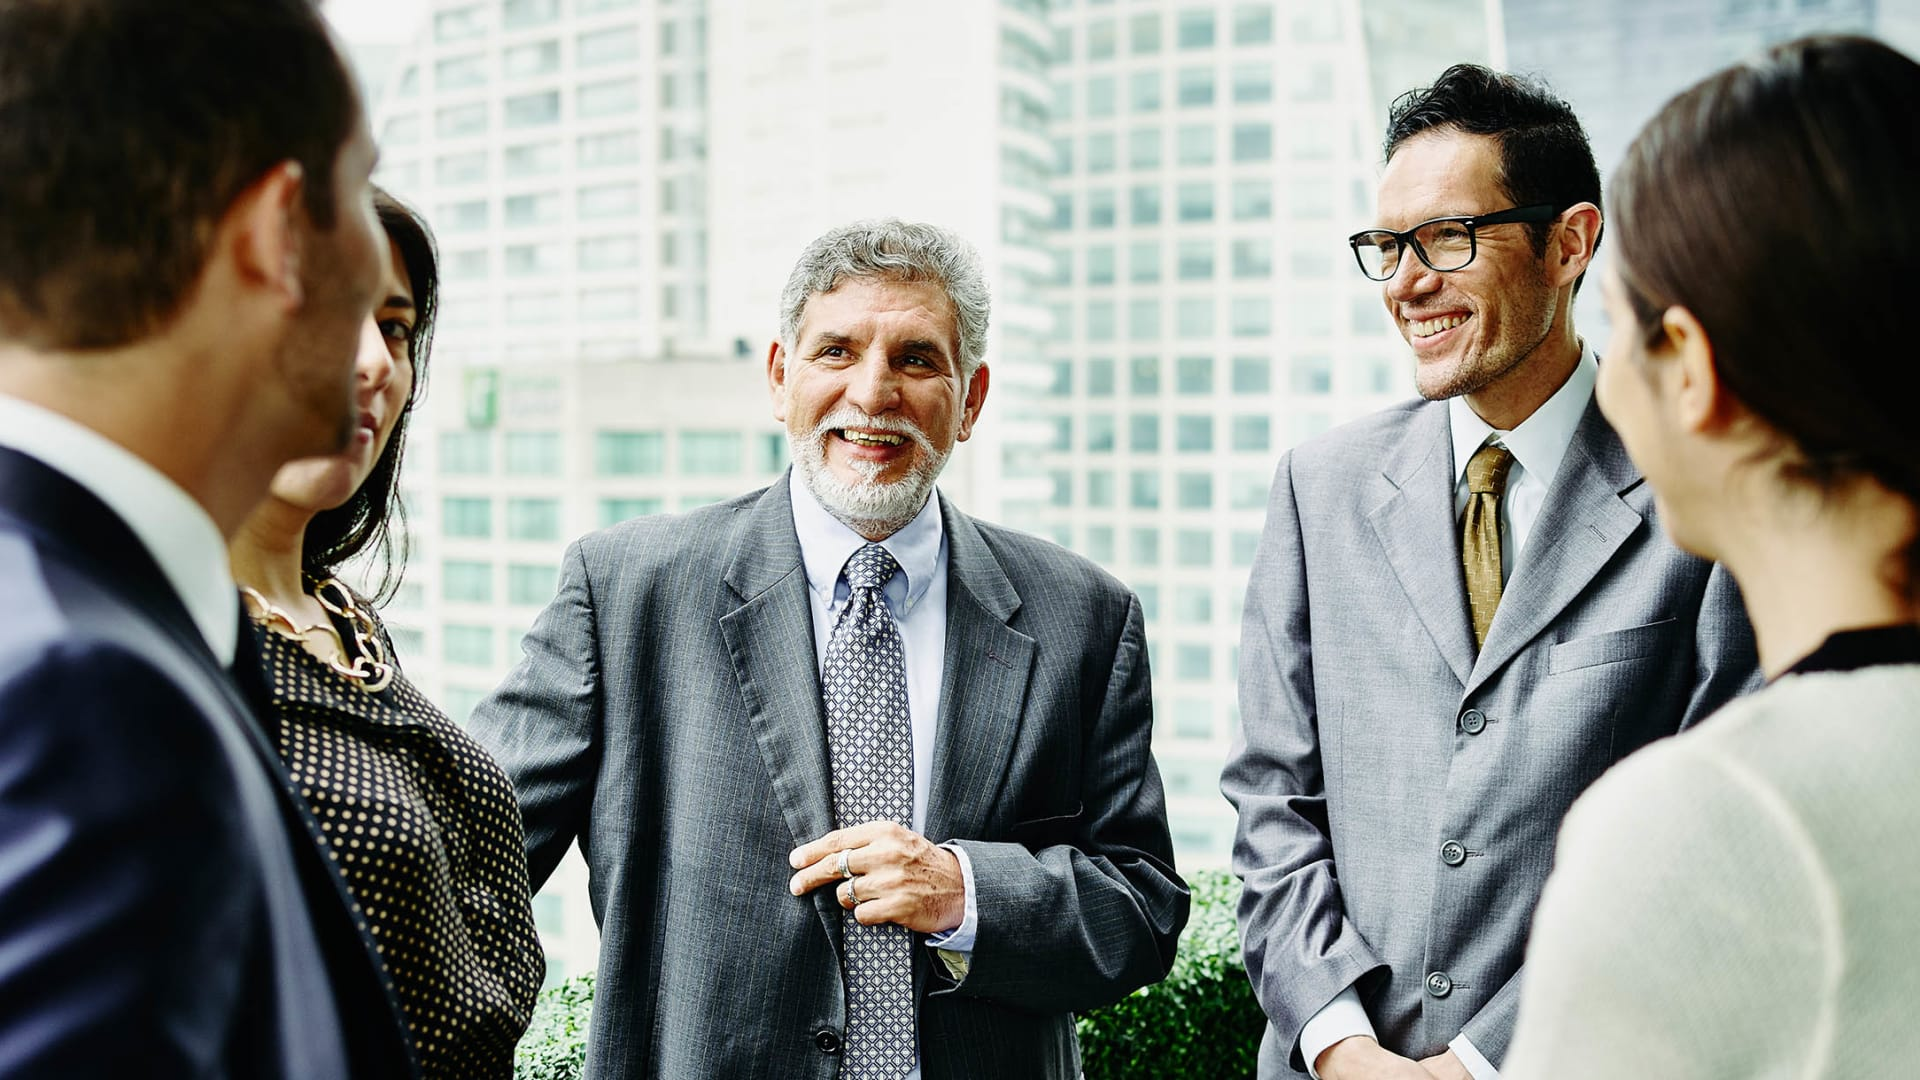 How Can You Truly Tell You're a Good Leader? 4 Execs Share Personal Lessons From the C-Suite